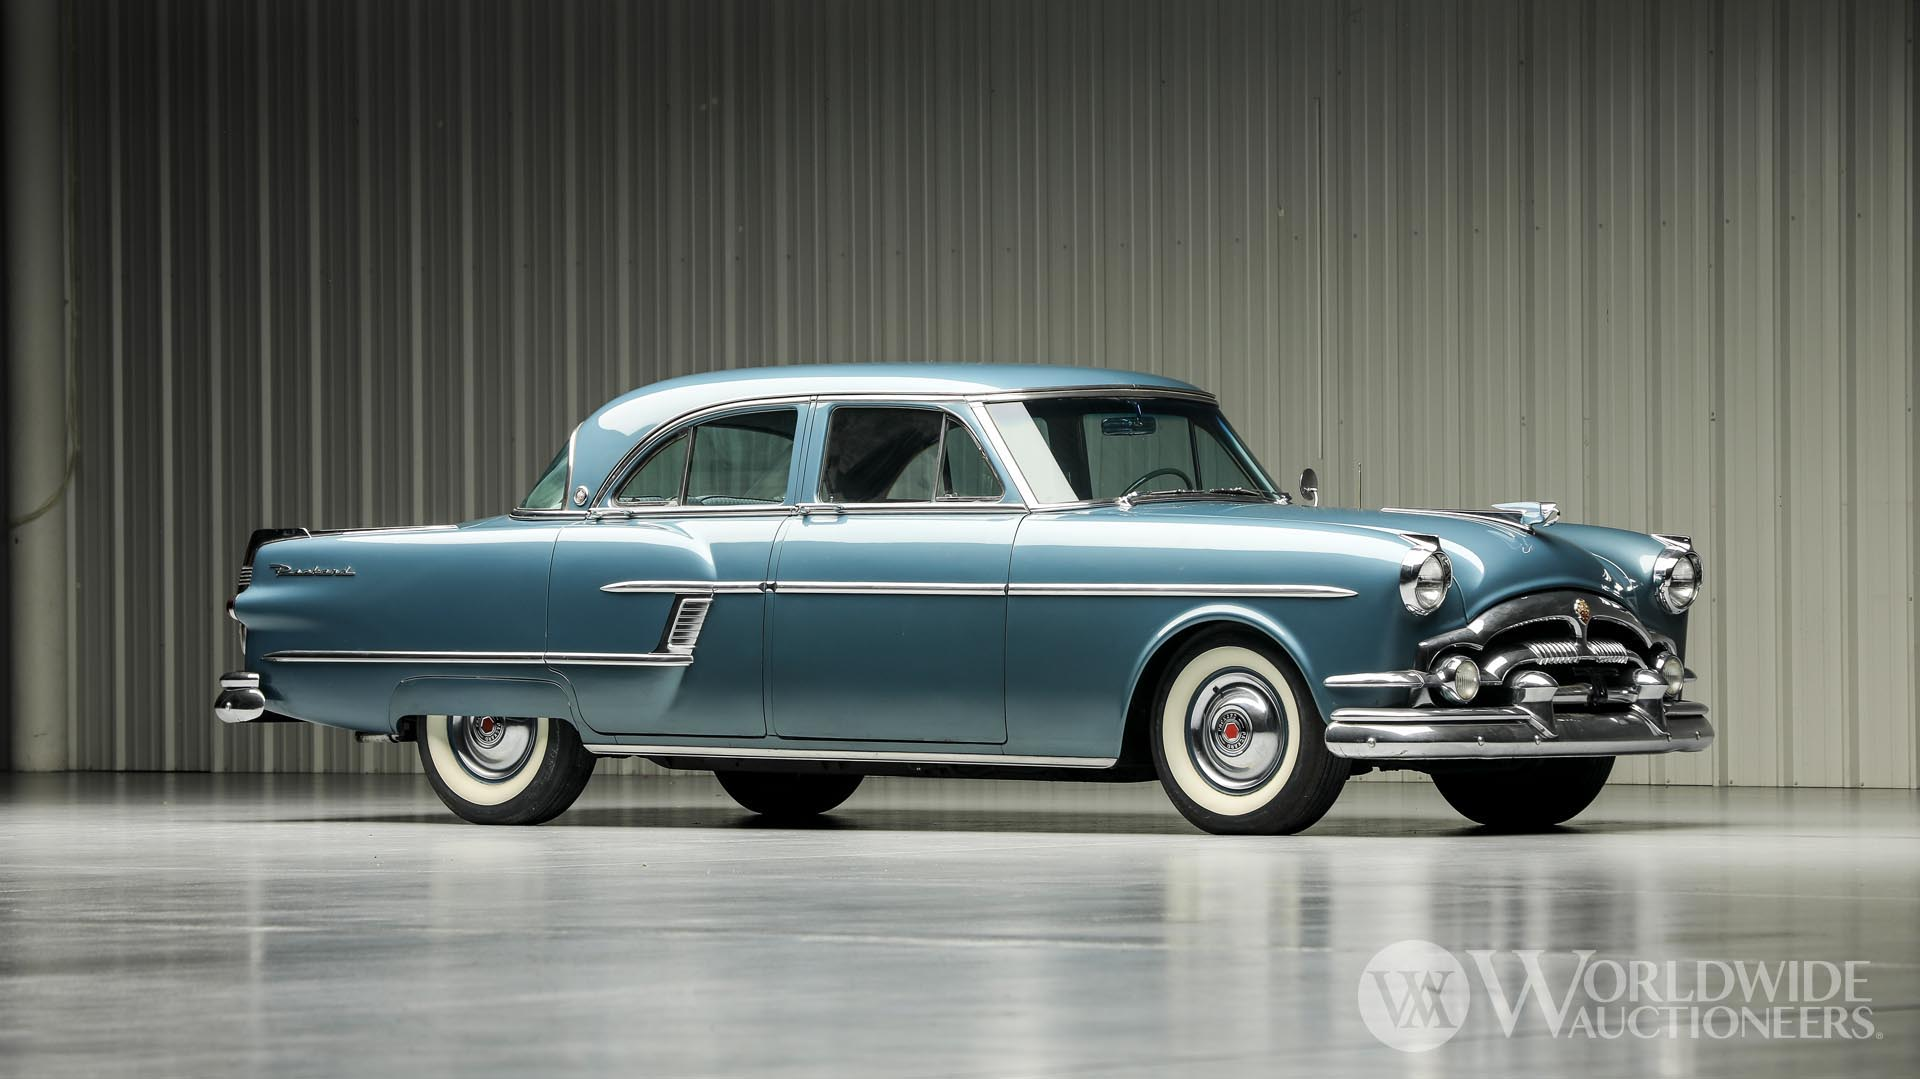 1954 Packard Patrician Touring Sedan